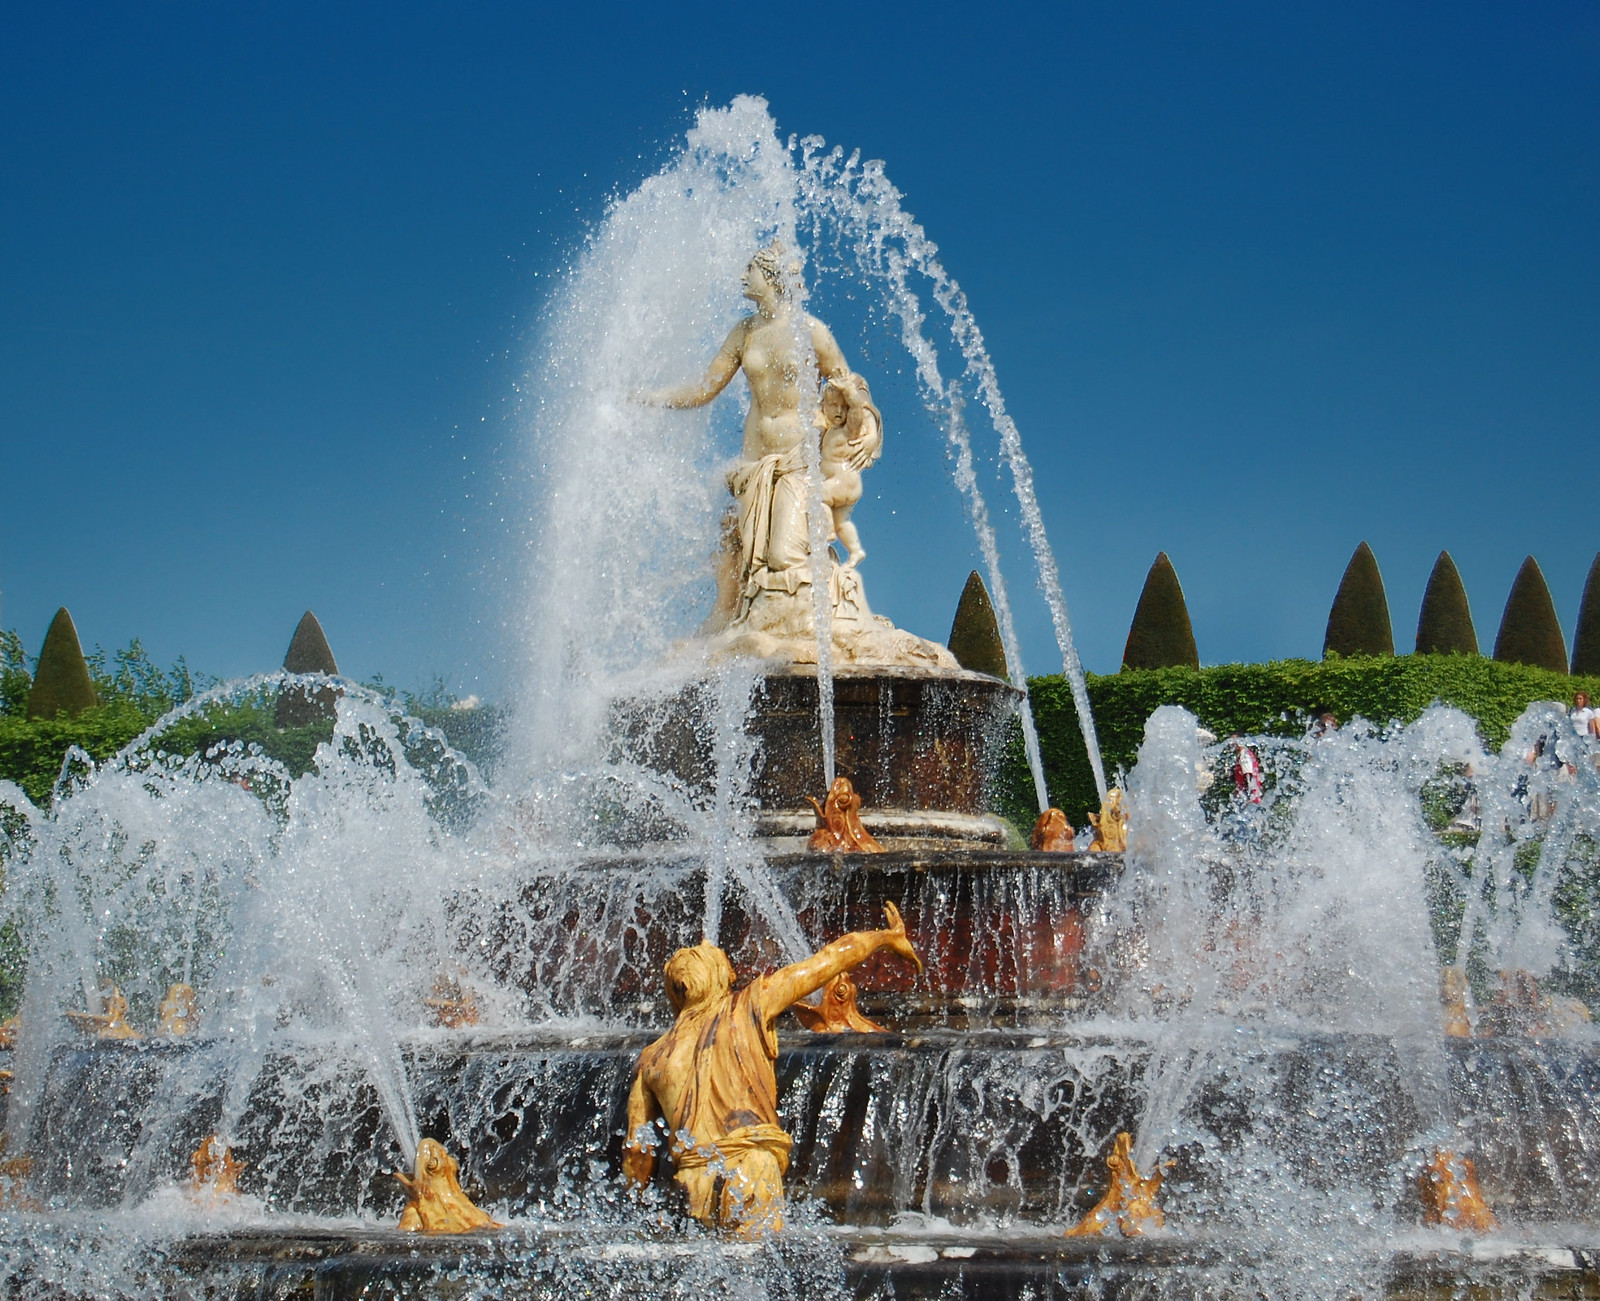 Fountain in the Gardens of Versailles. Credit edwin.11